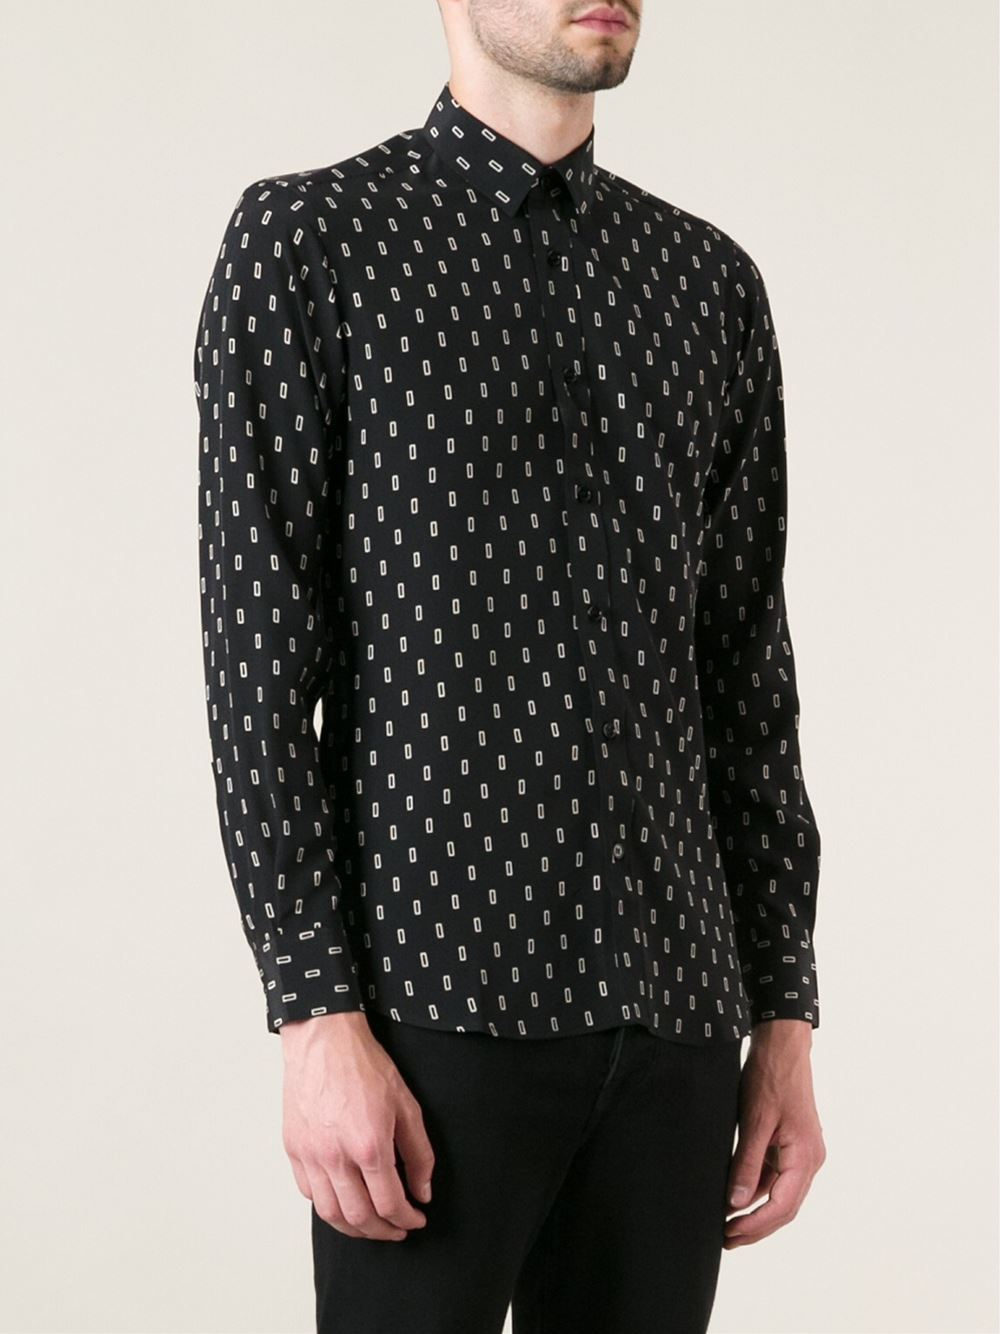 80a918993b2 Lyst - Saint laurent Printed Shirt in Black for Men